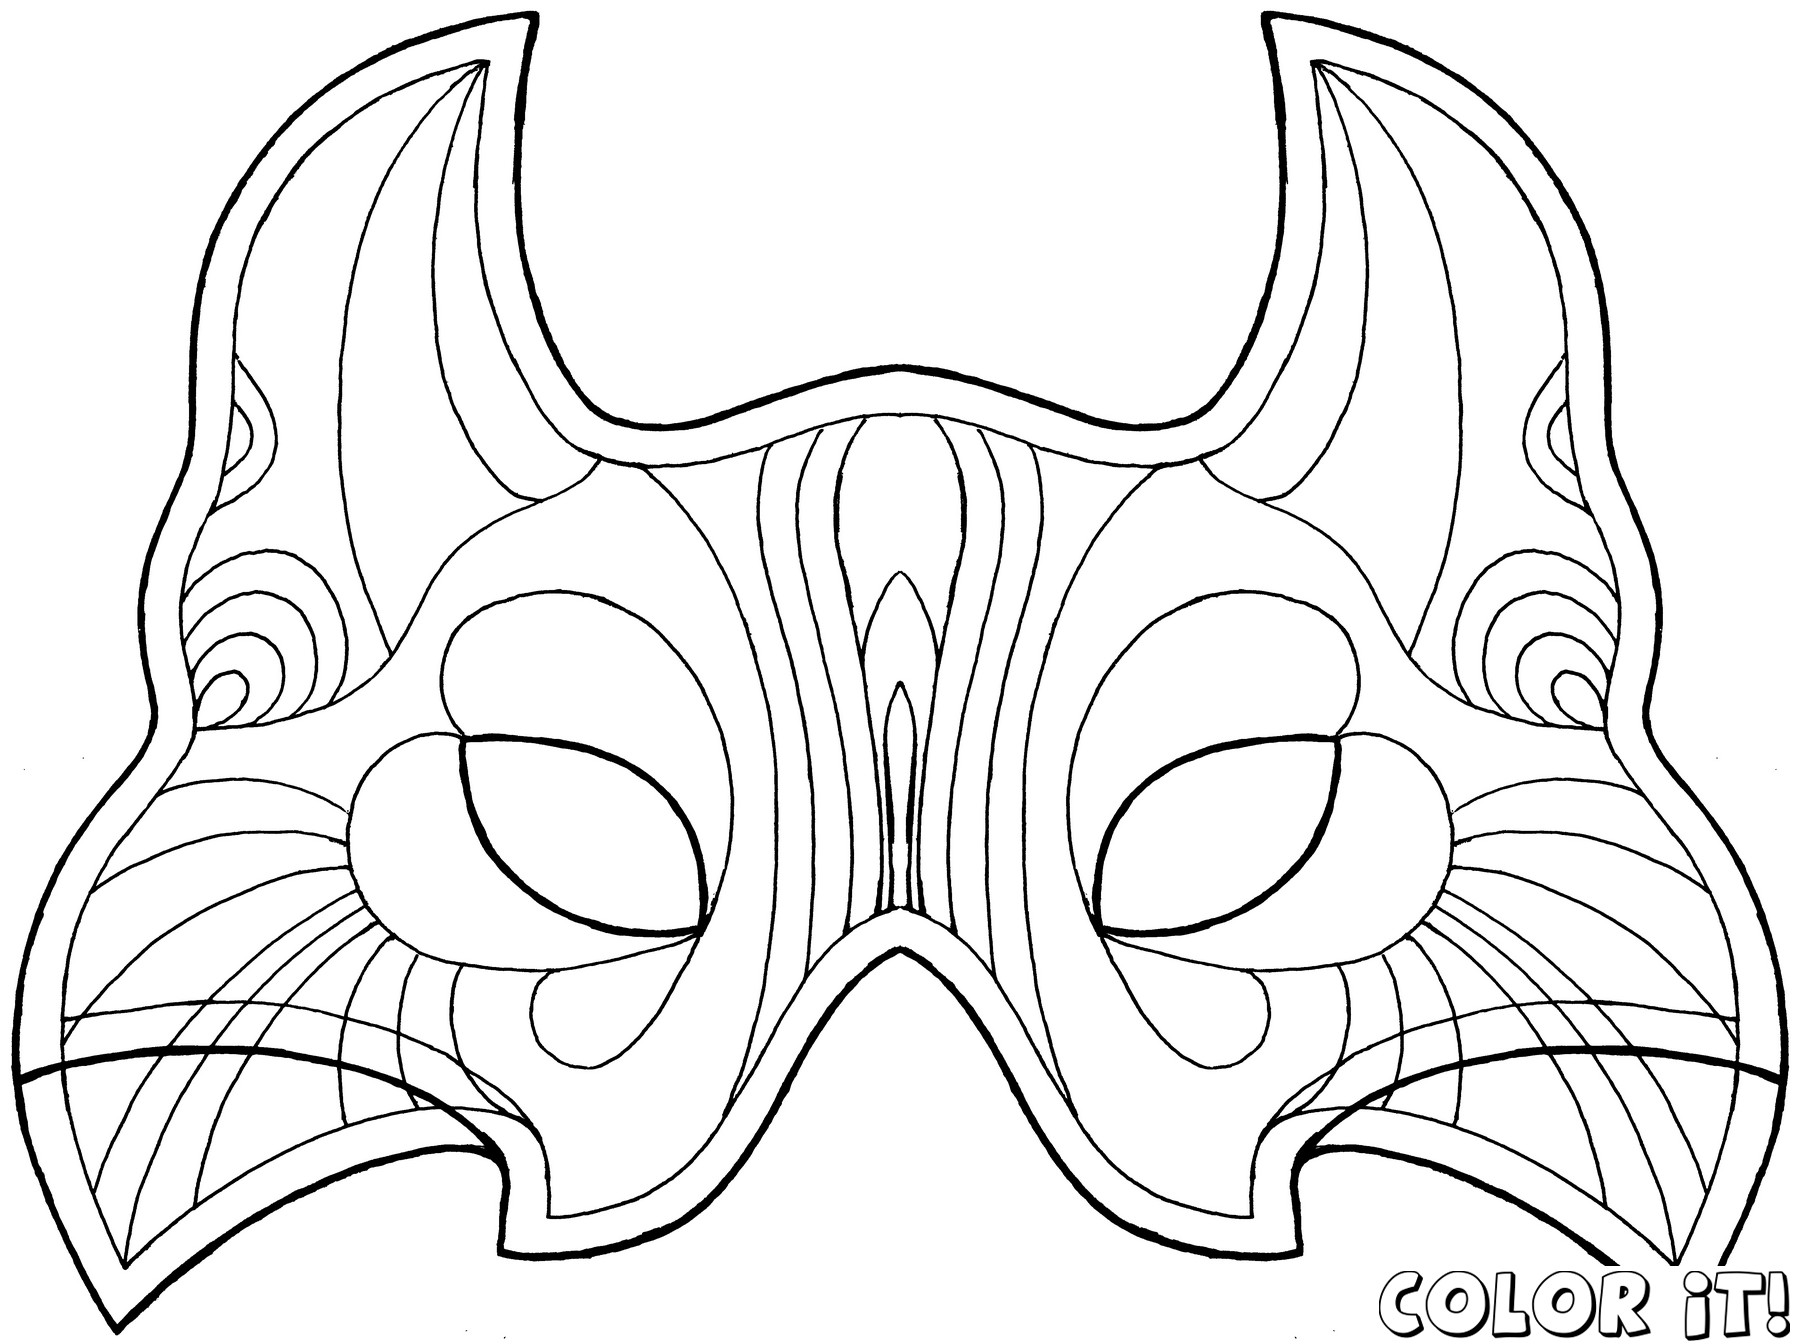 Free online coloring pages of power rangers - Colouring Masks Most Popular Mask Design 2017